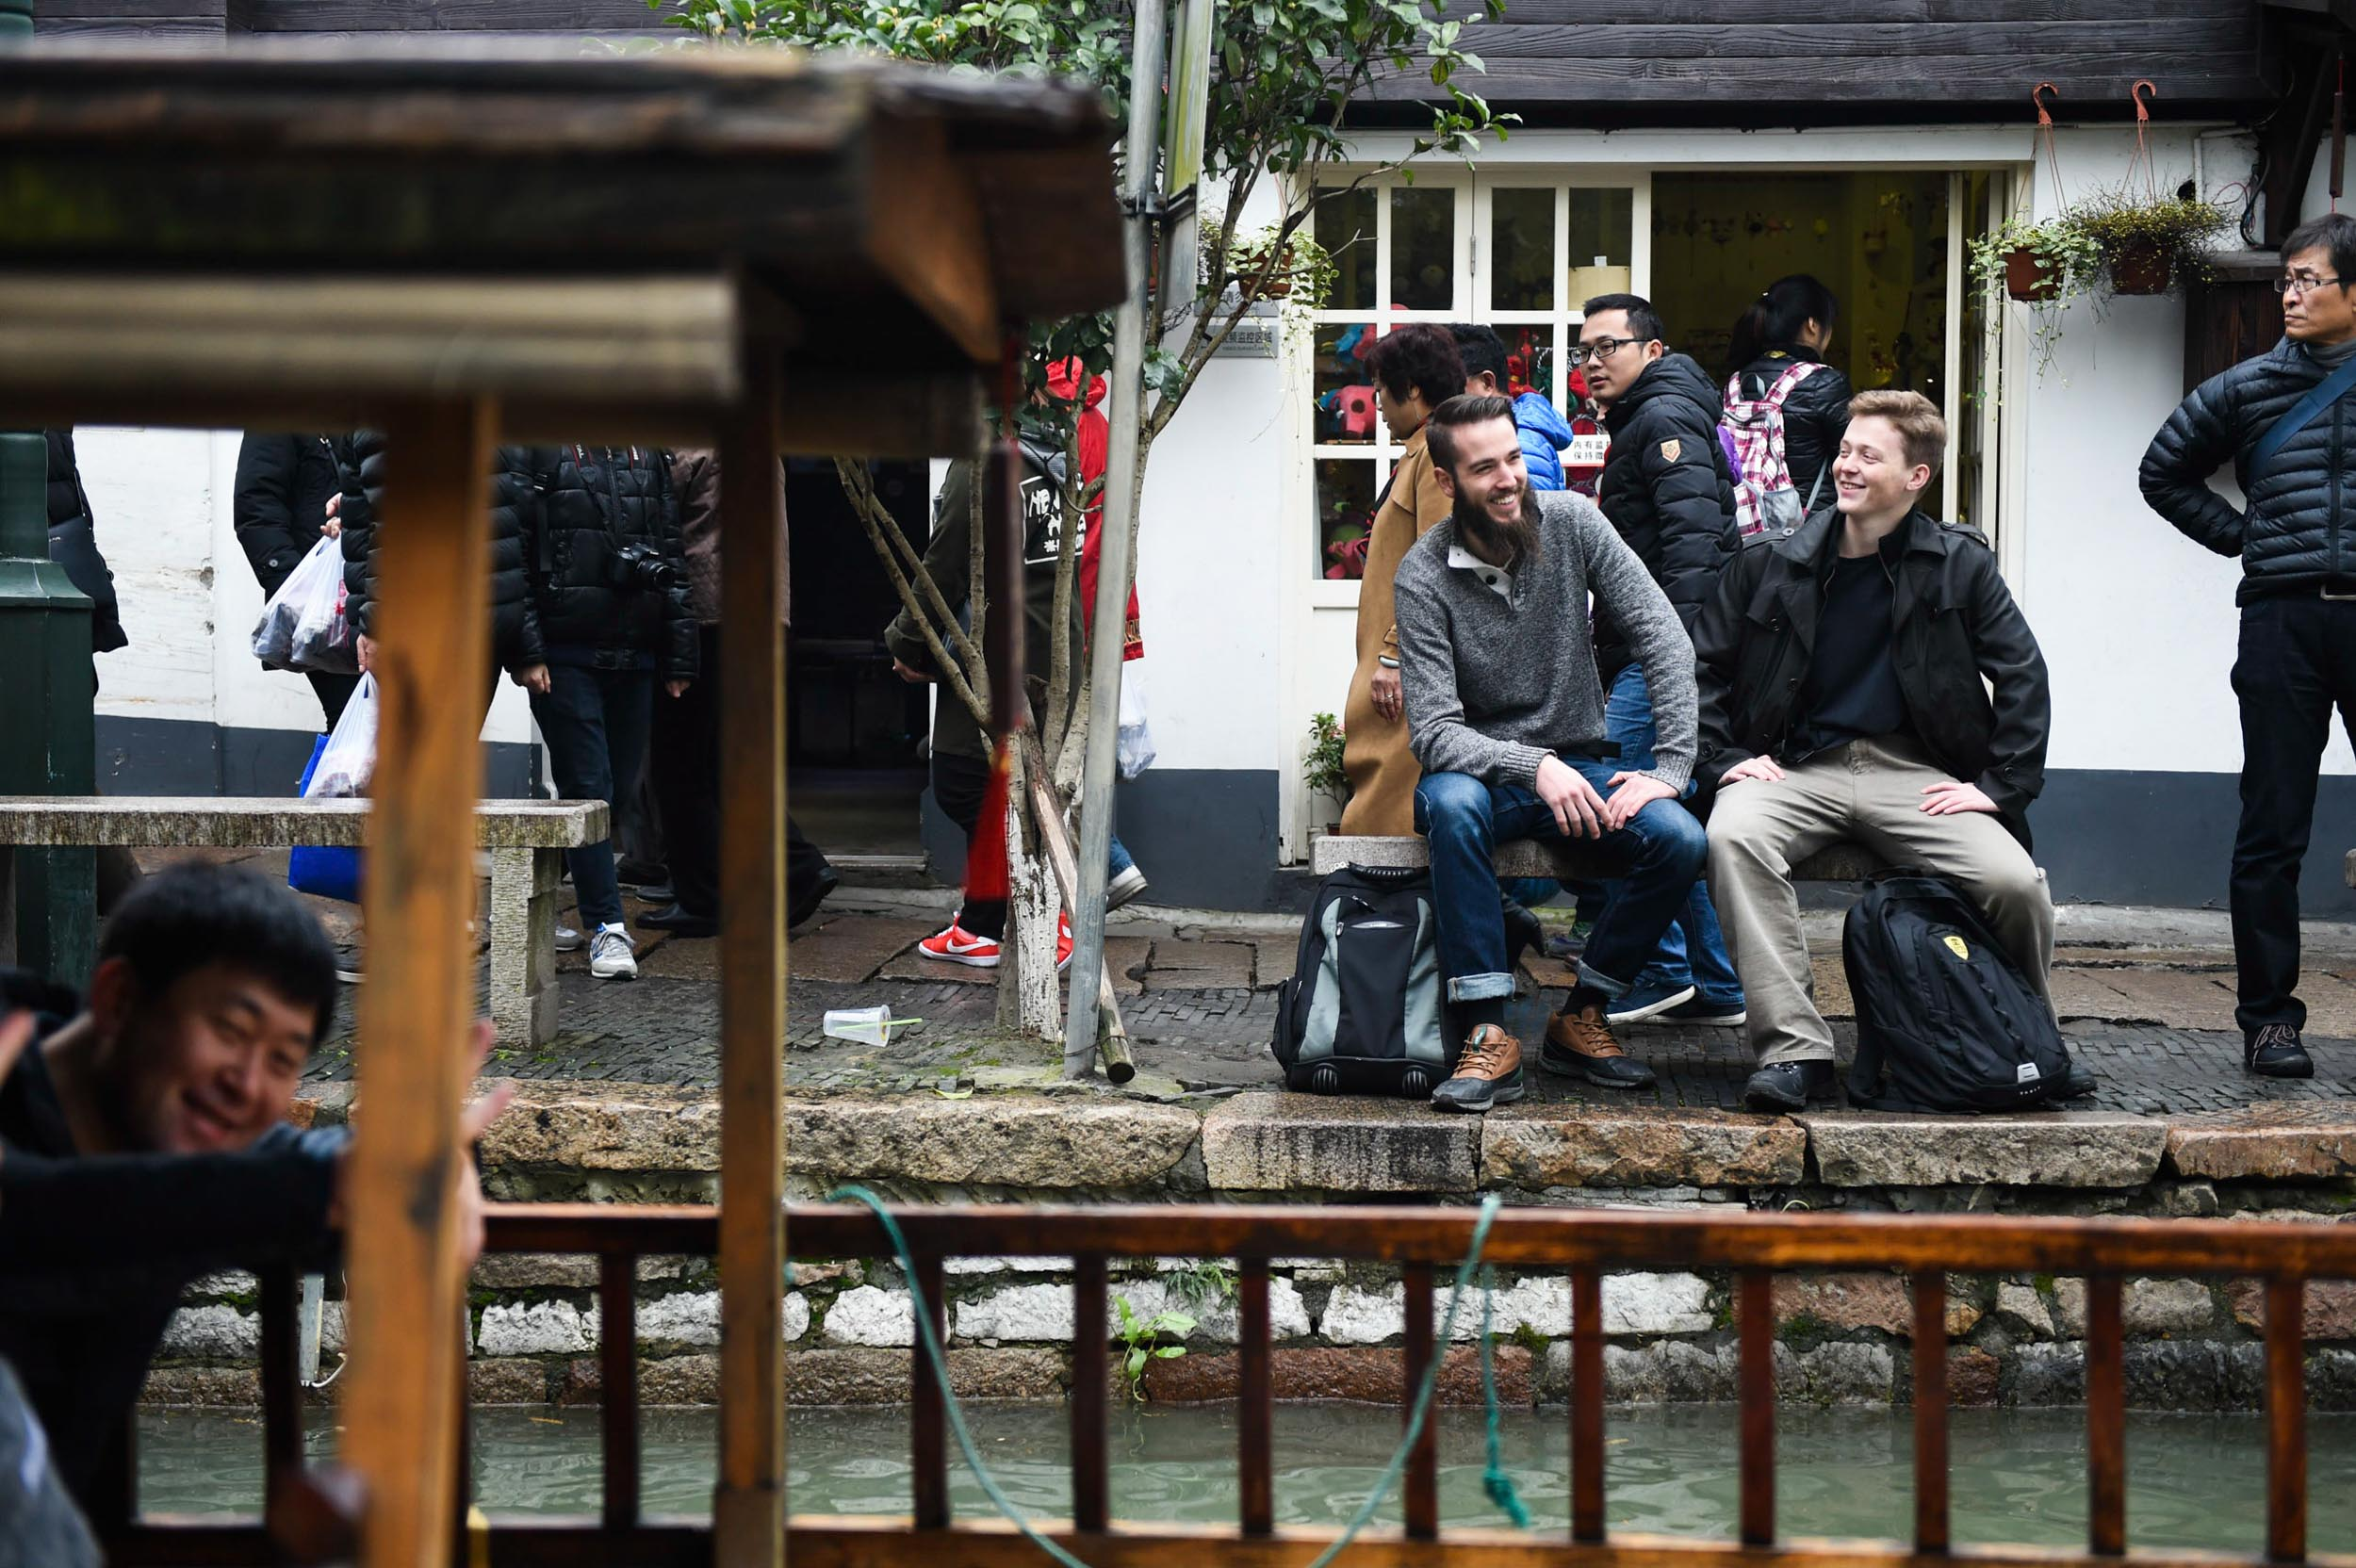 Centre Abroad in China 2015 - Zhujiajiao